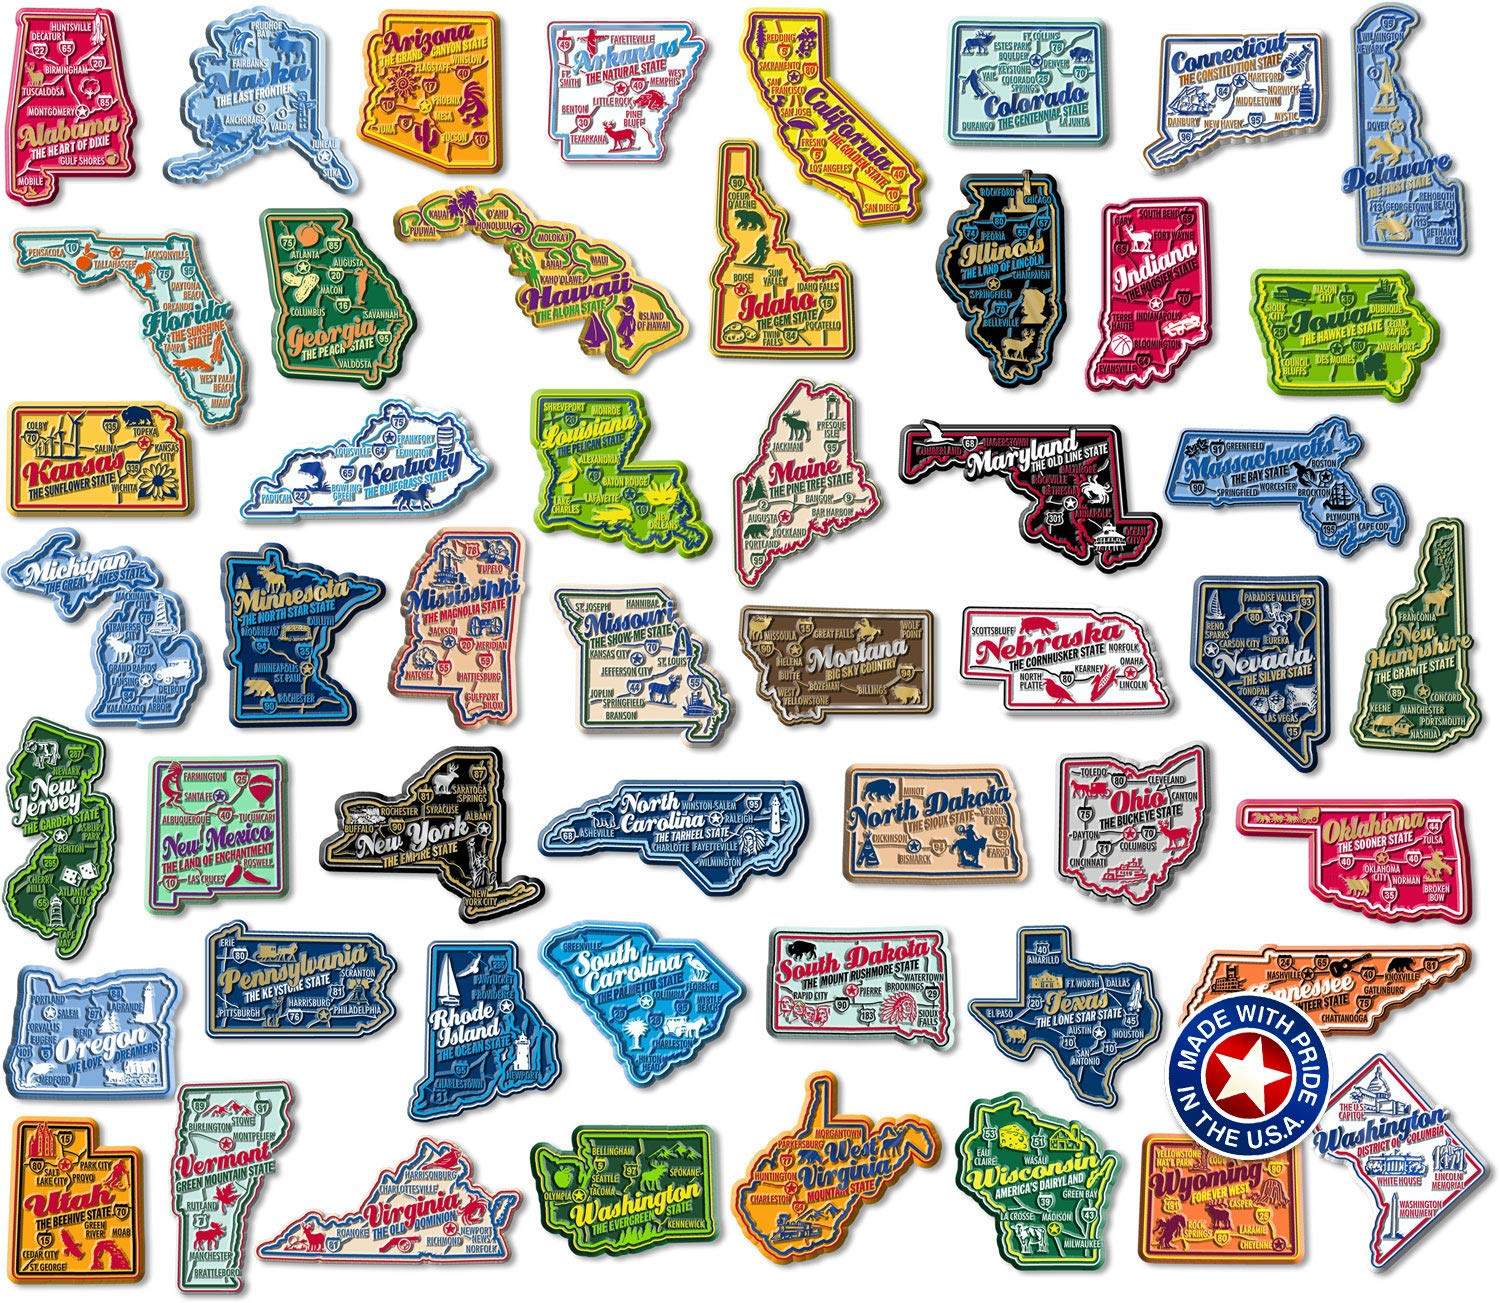 Complete Set of Premium State Map Magnets by Classic Magnets